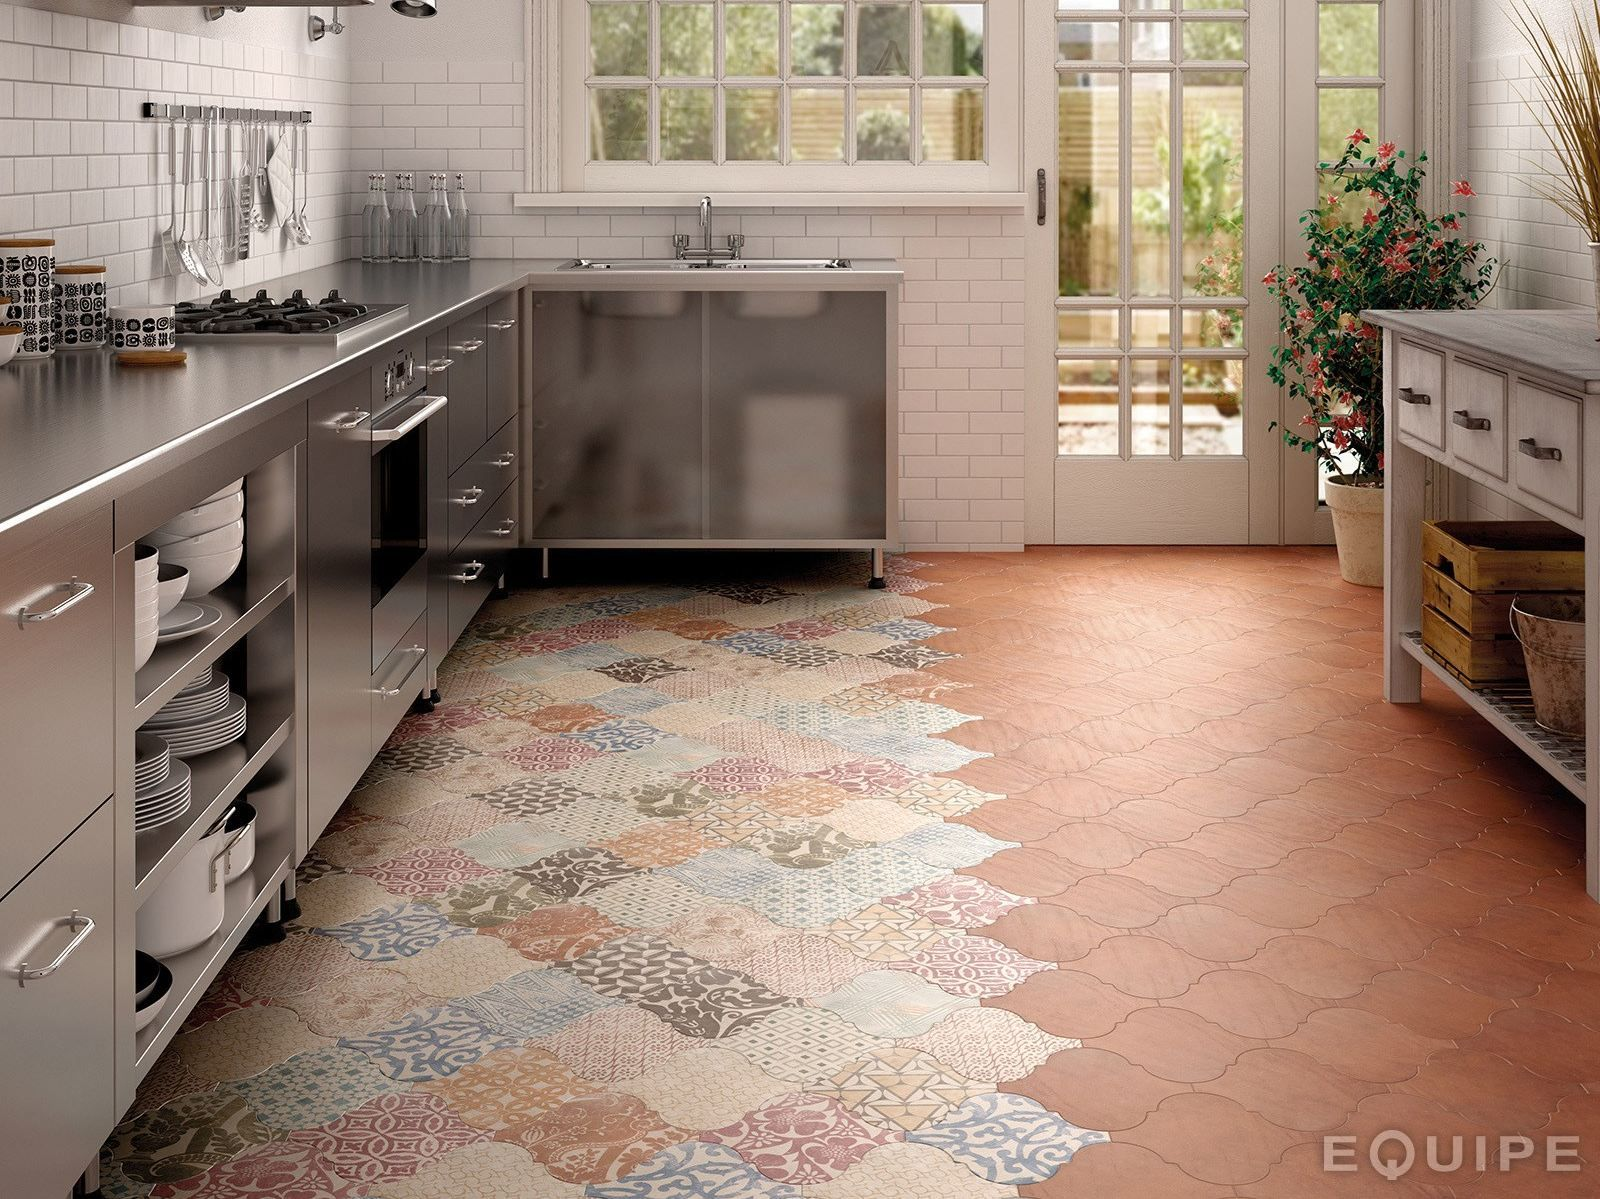 Uncategorized Tiles Kitchen Floor 21 arabesque tile ideas for floor wall and backsplash backsplash